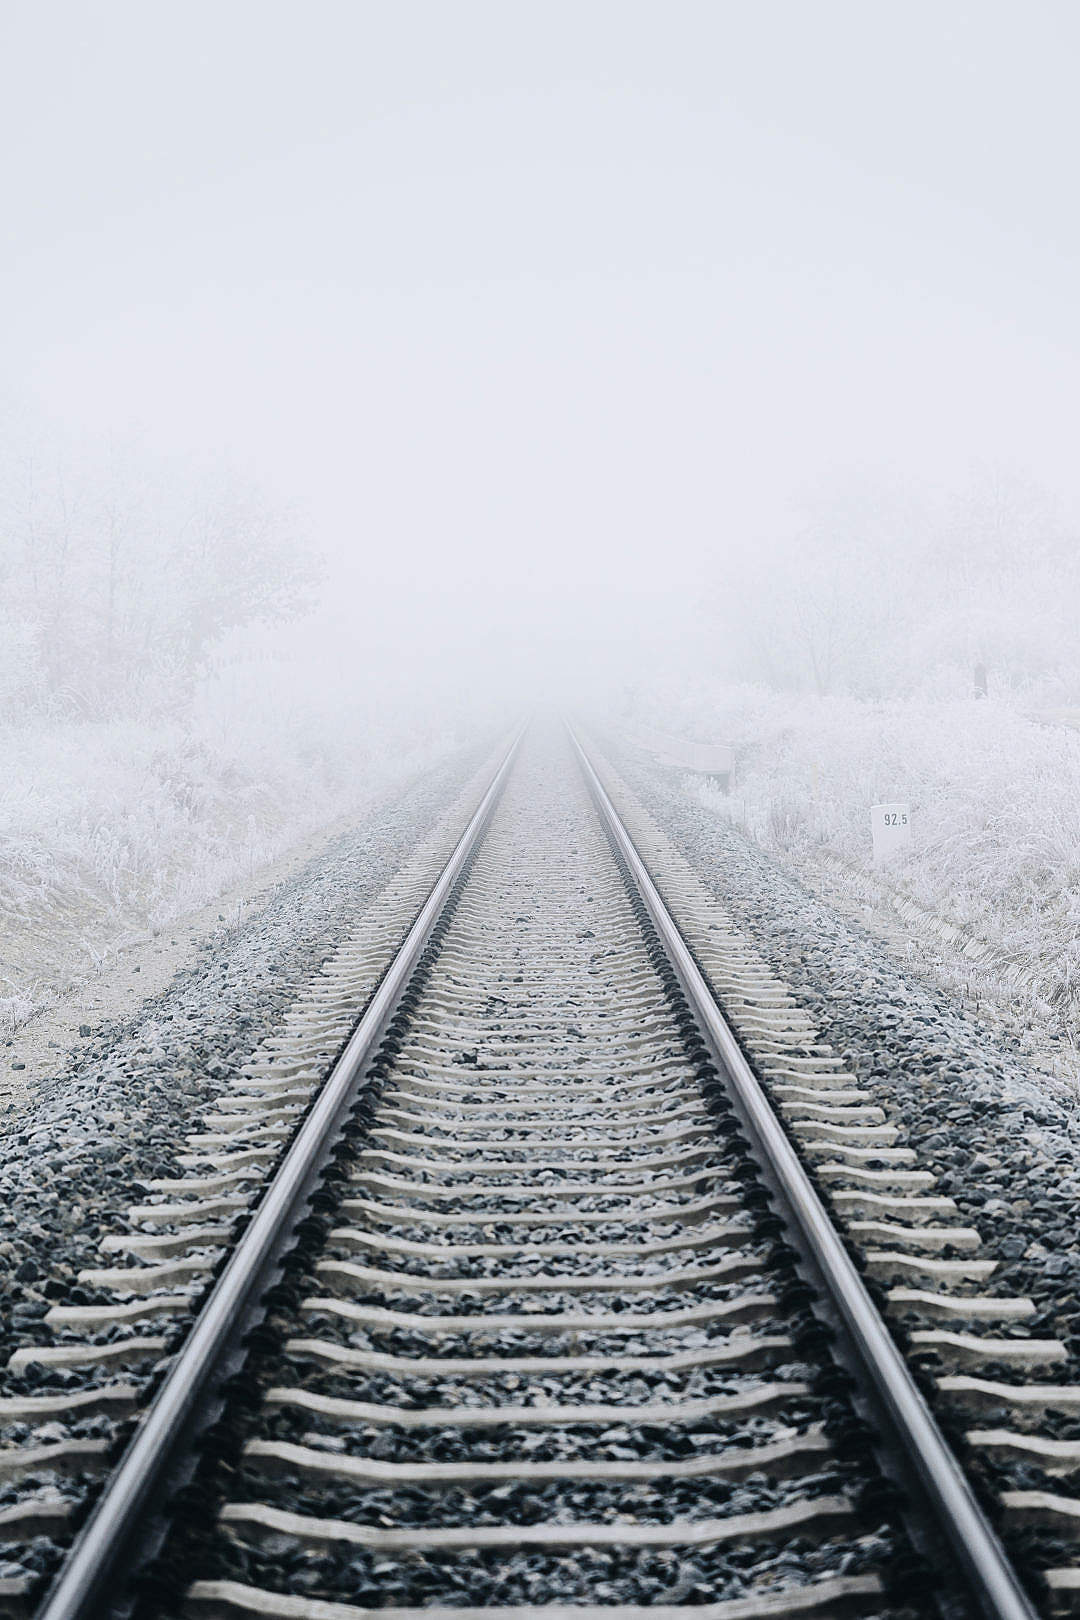 Download Railway in The Fog FREE Stock Photo